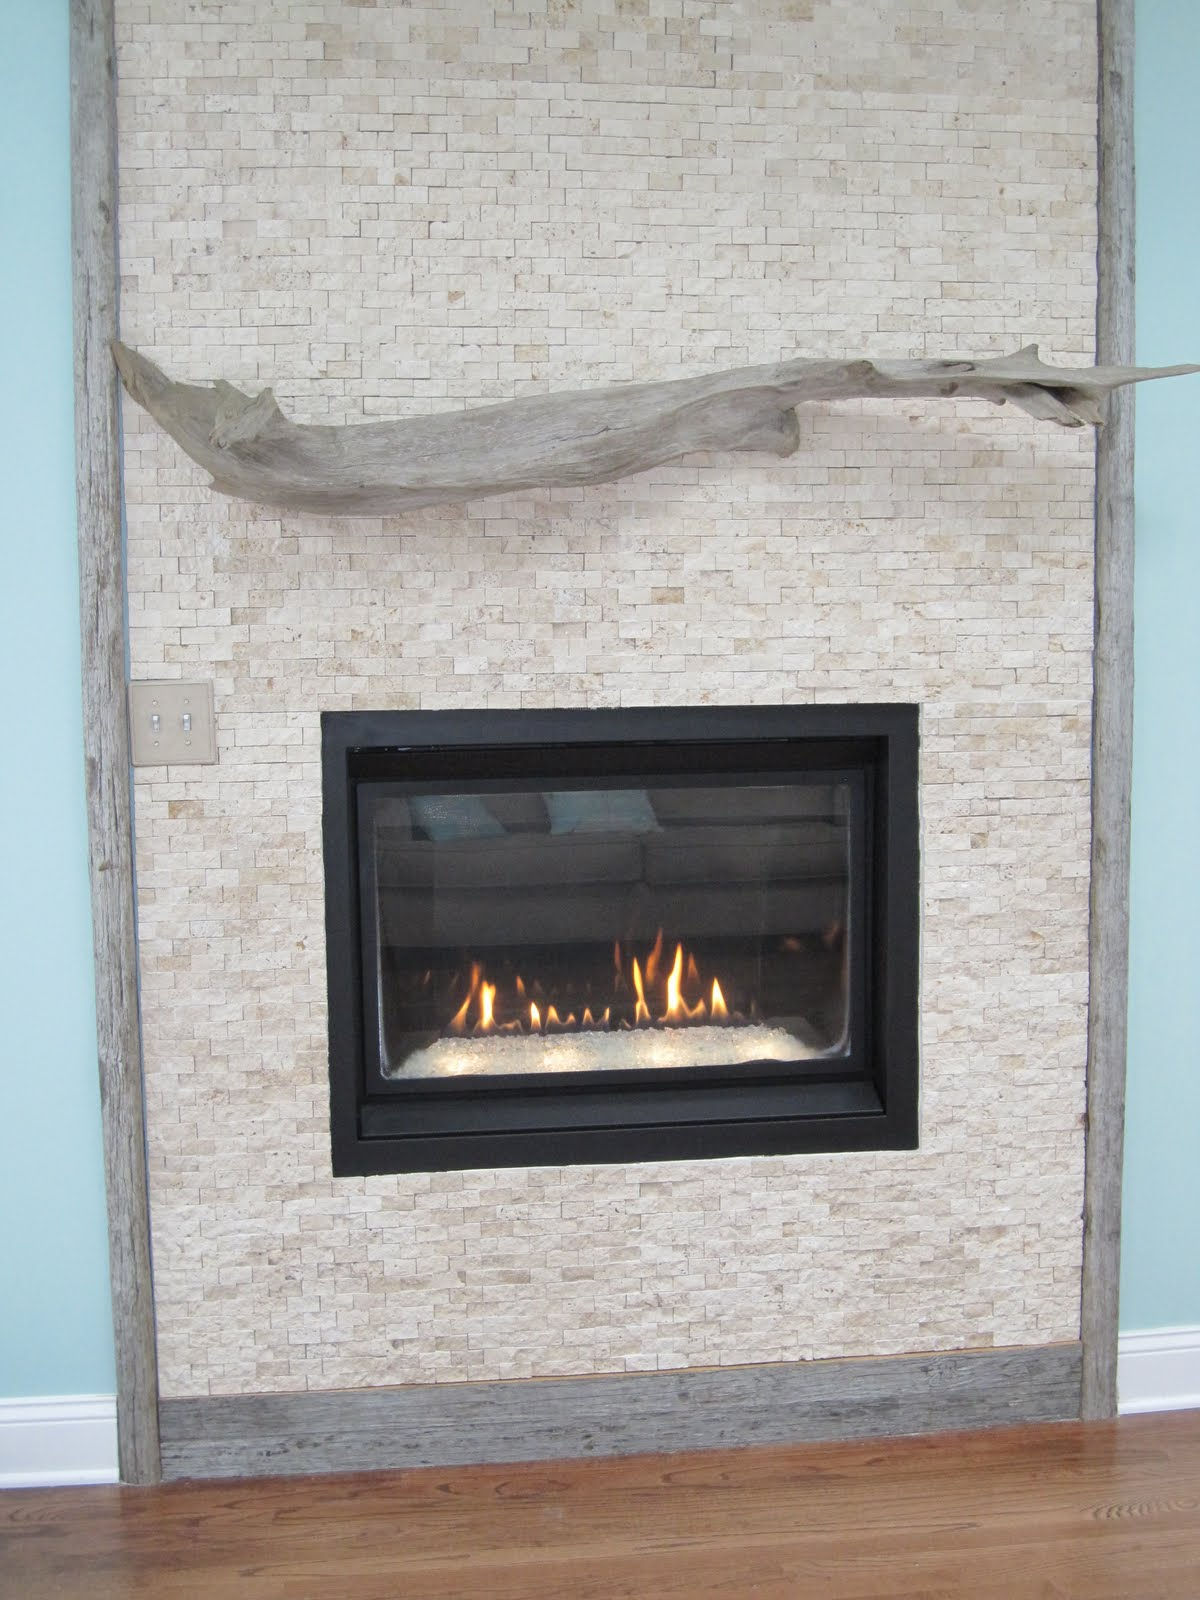 By the Sea: Our Driftwood Fireplace Mantle